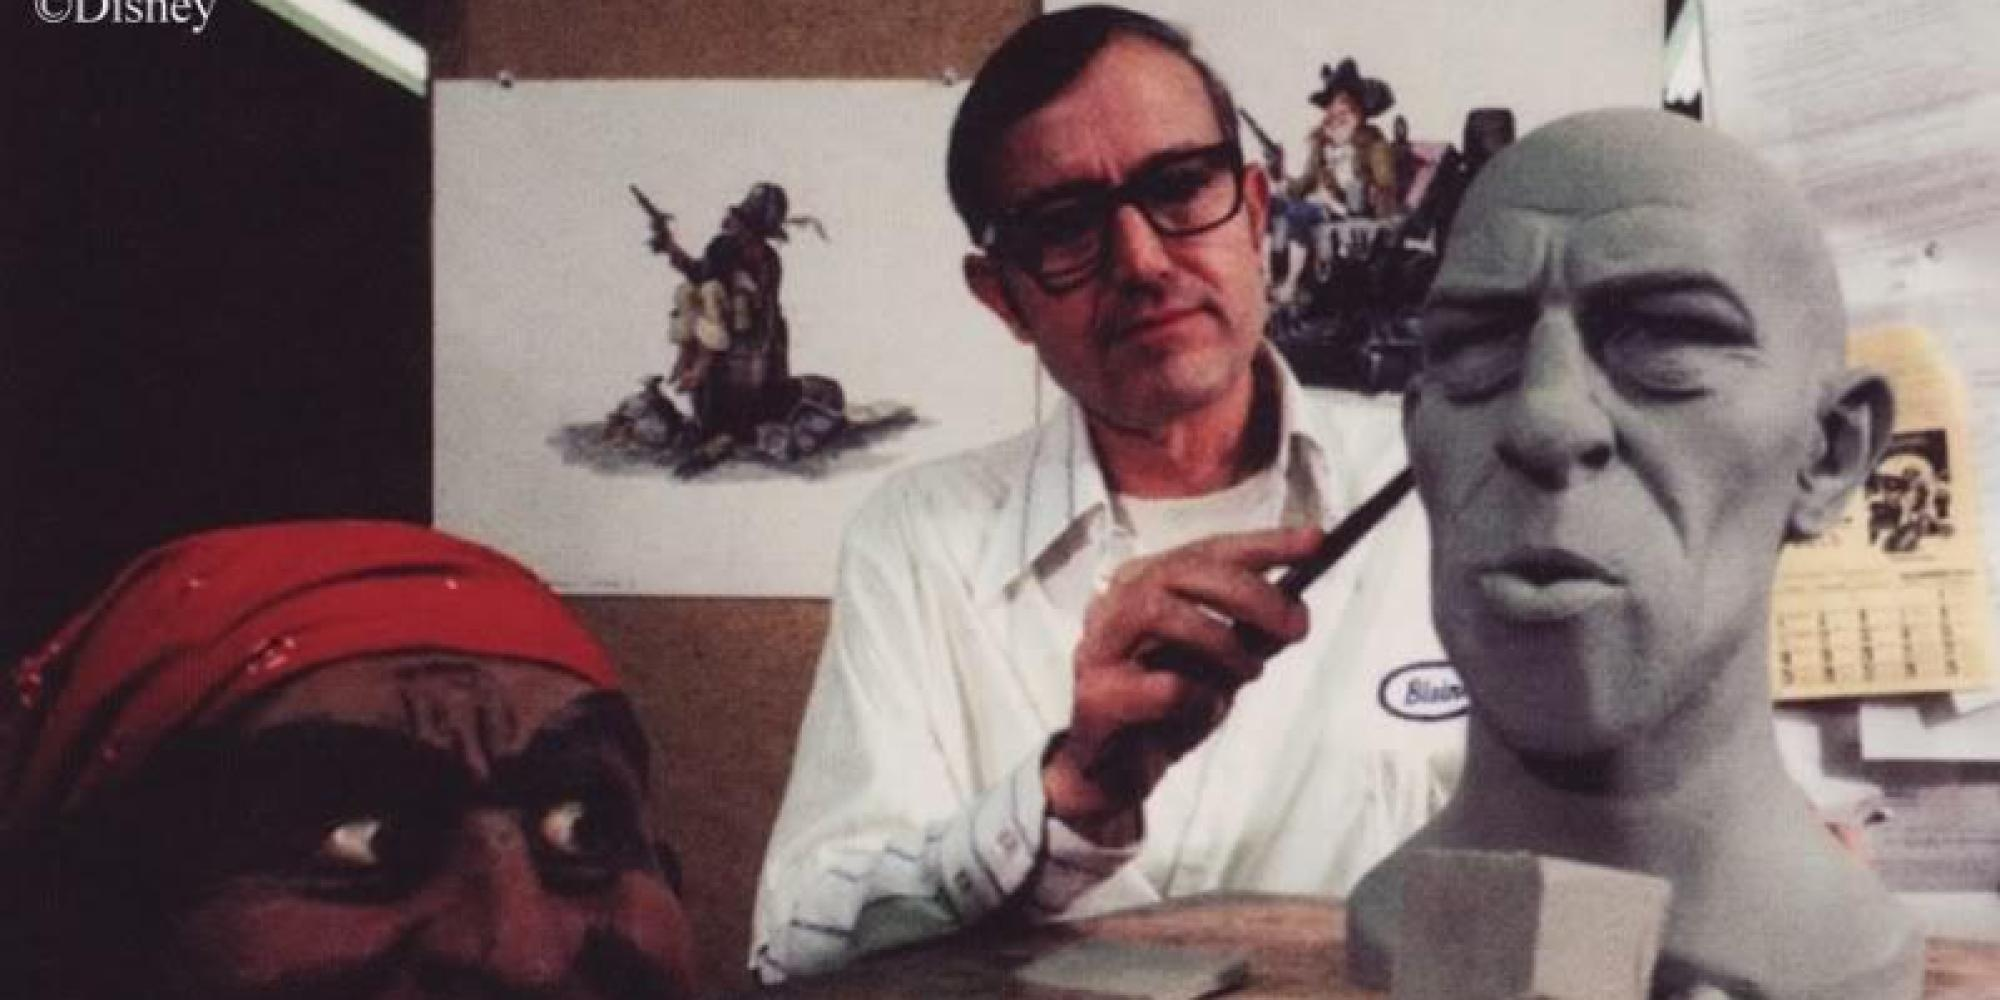 Blaine Gibson Disney Legend Behind Pirates And Haunted